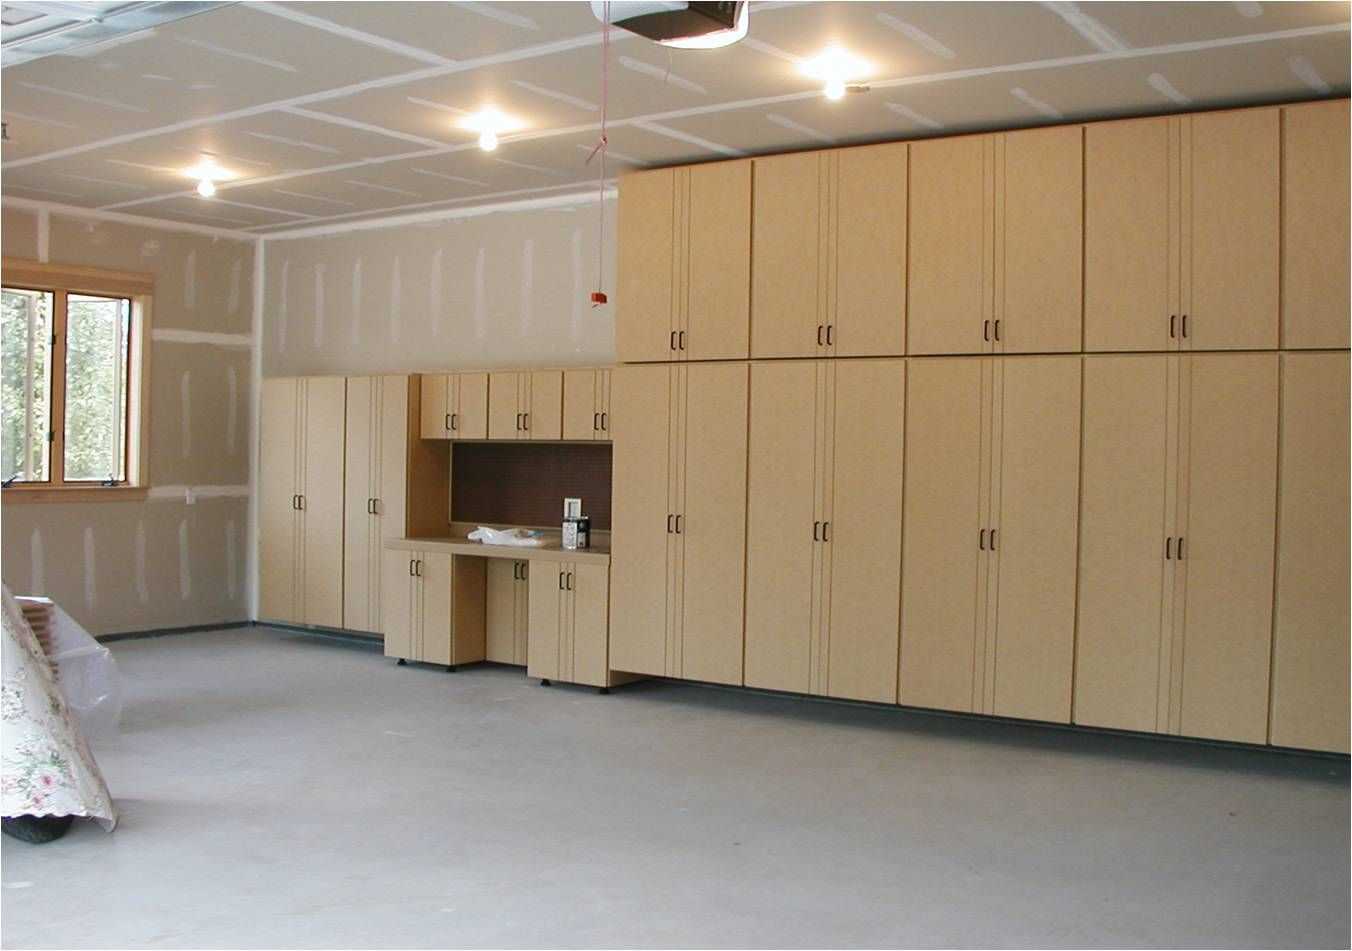 Garage Storage Cabinets 22 And Cabinet Systems